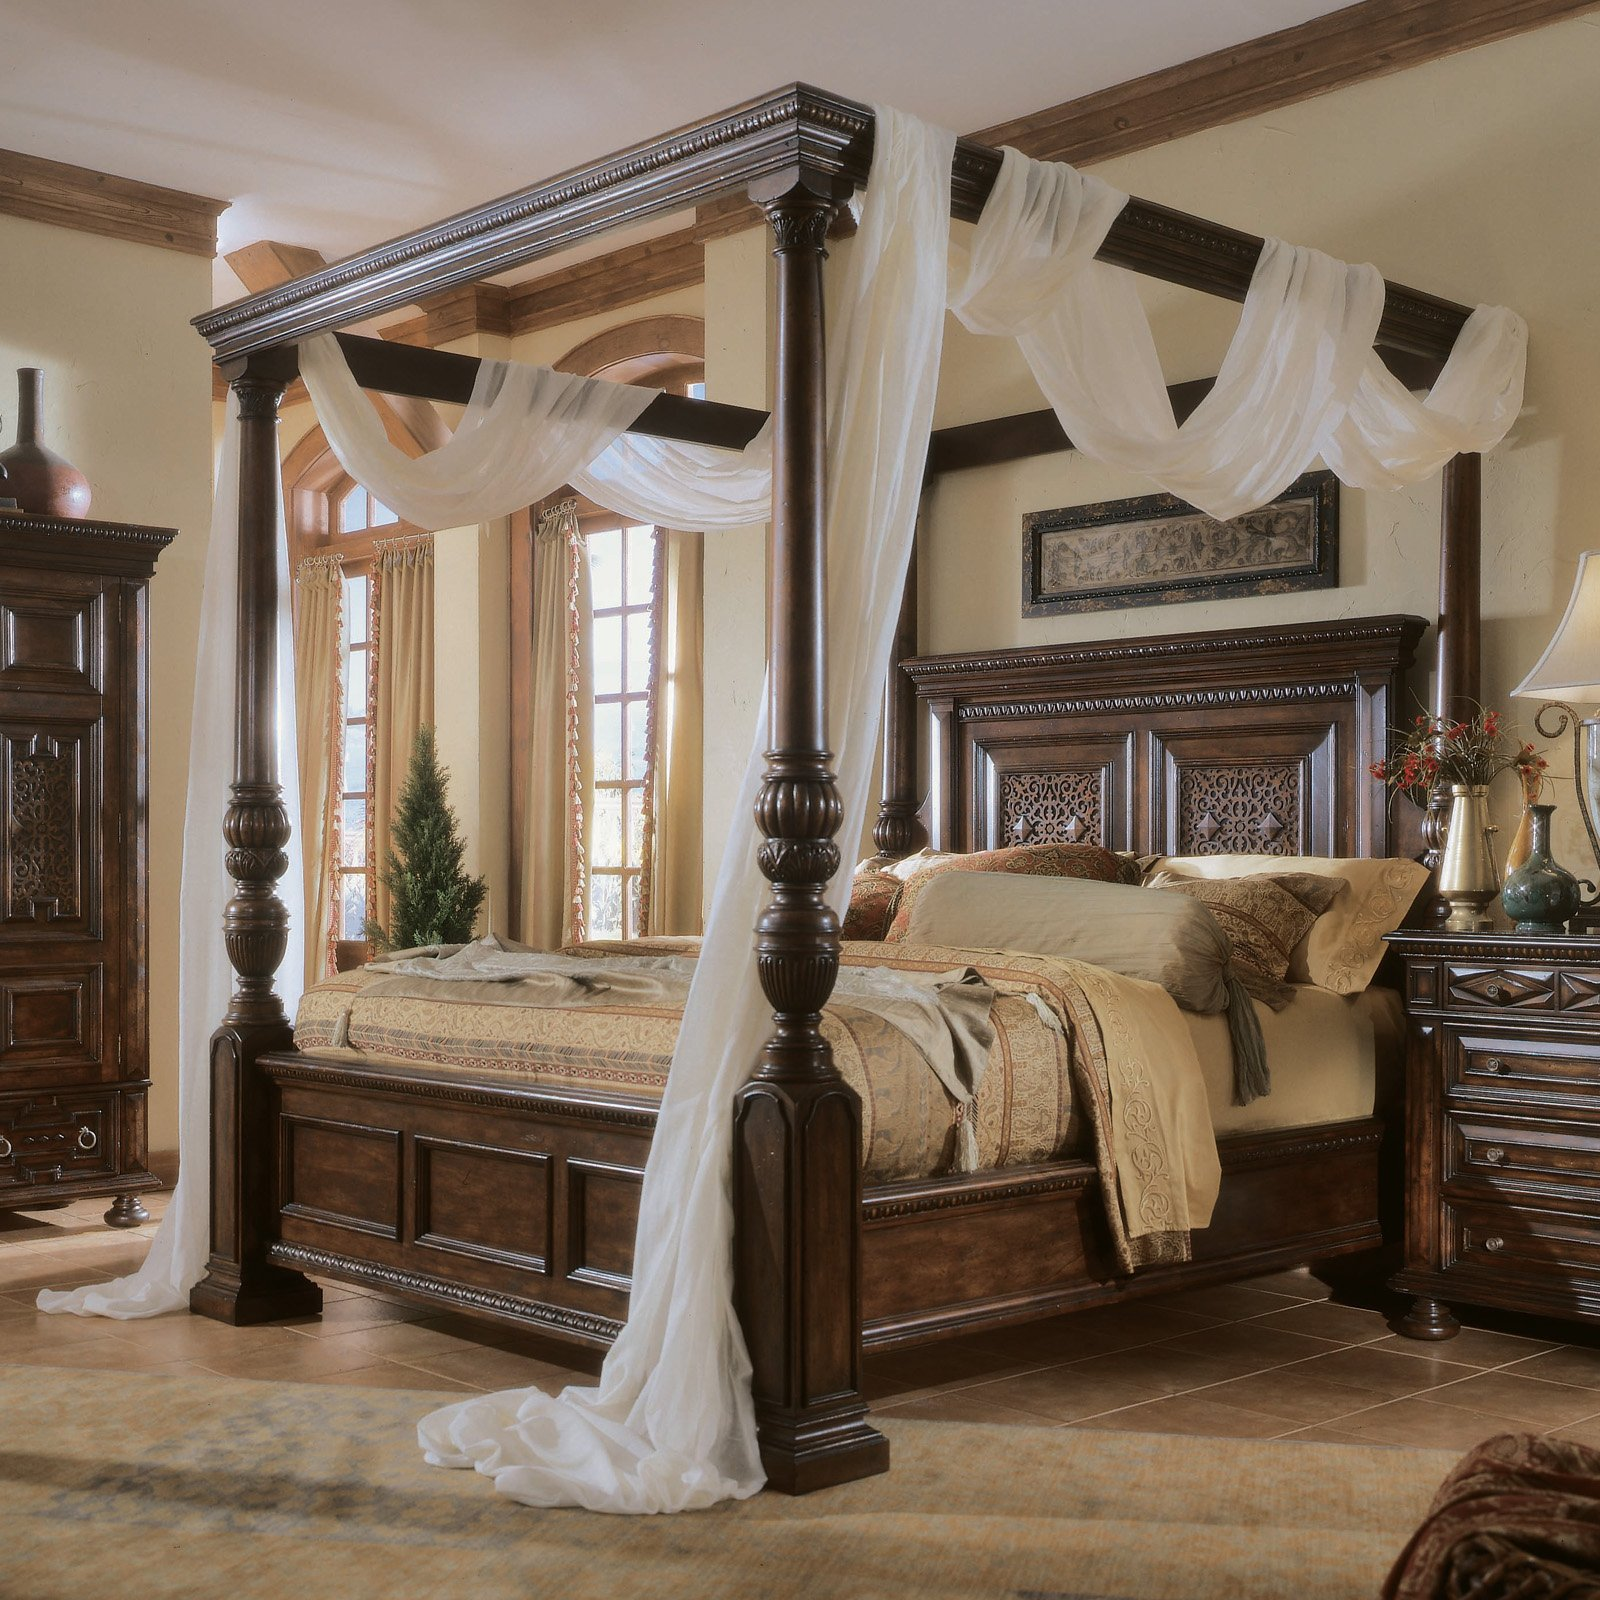 Interior design home decor furniture furnishings Beautiful canopy beds